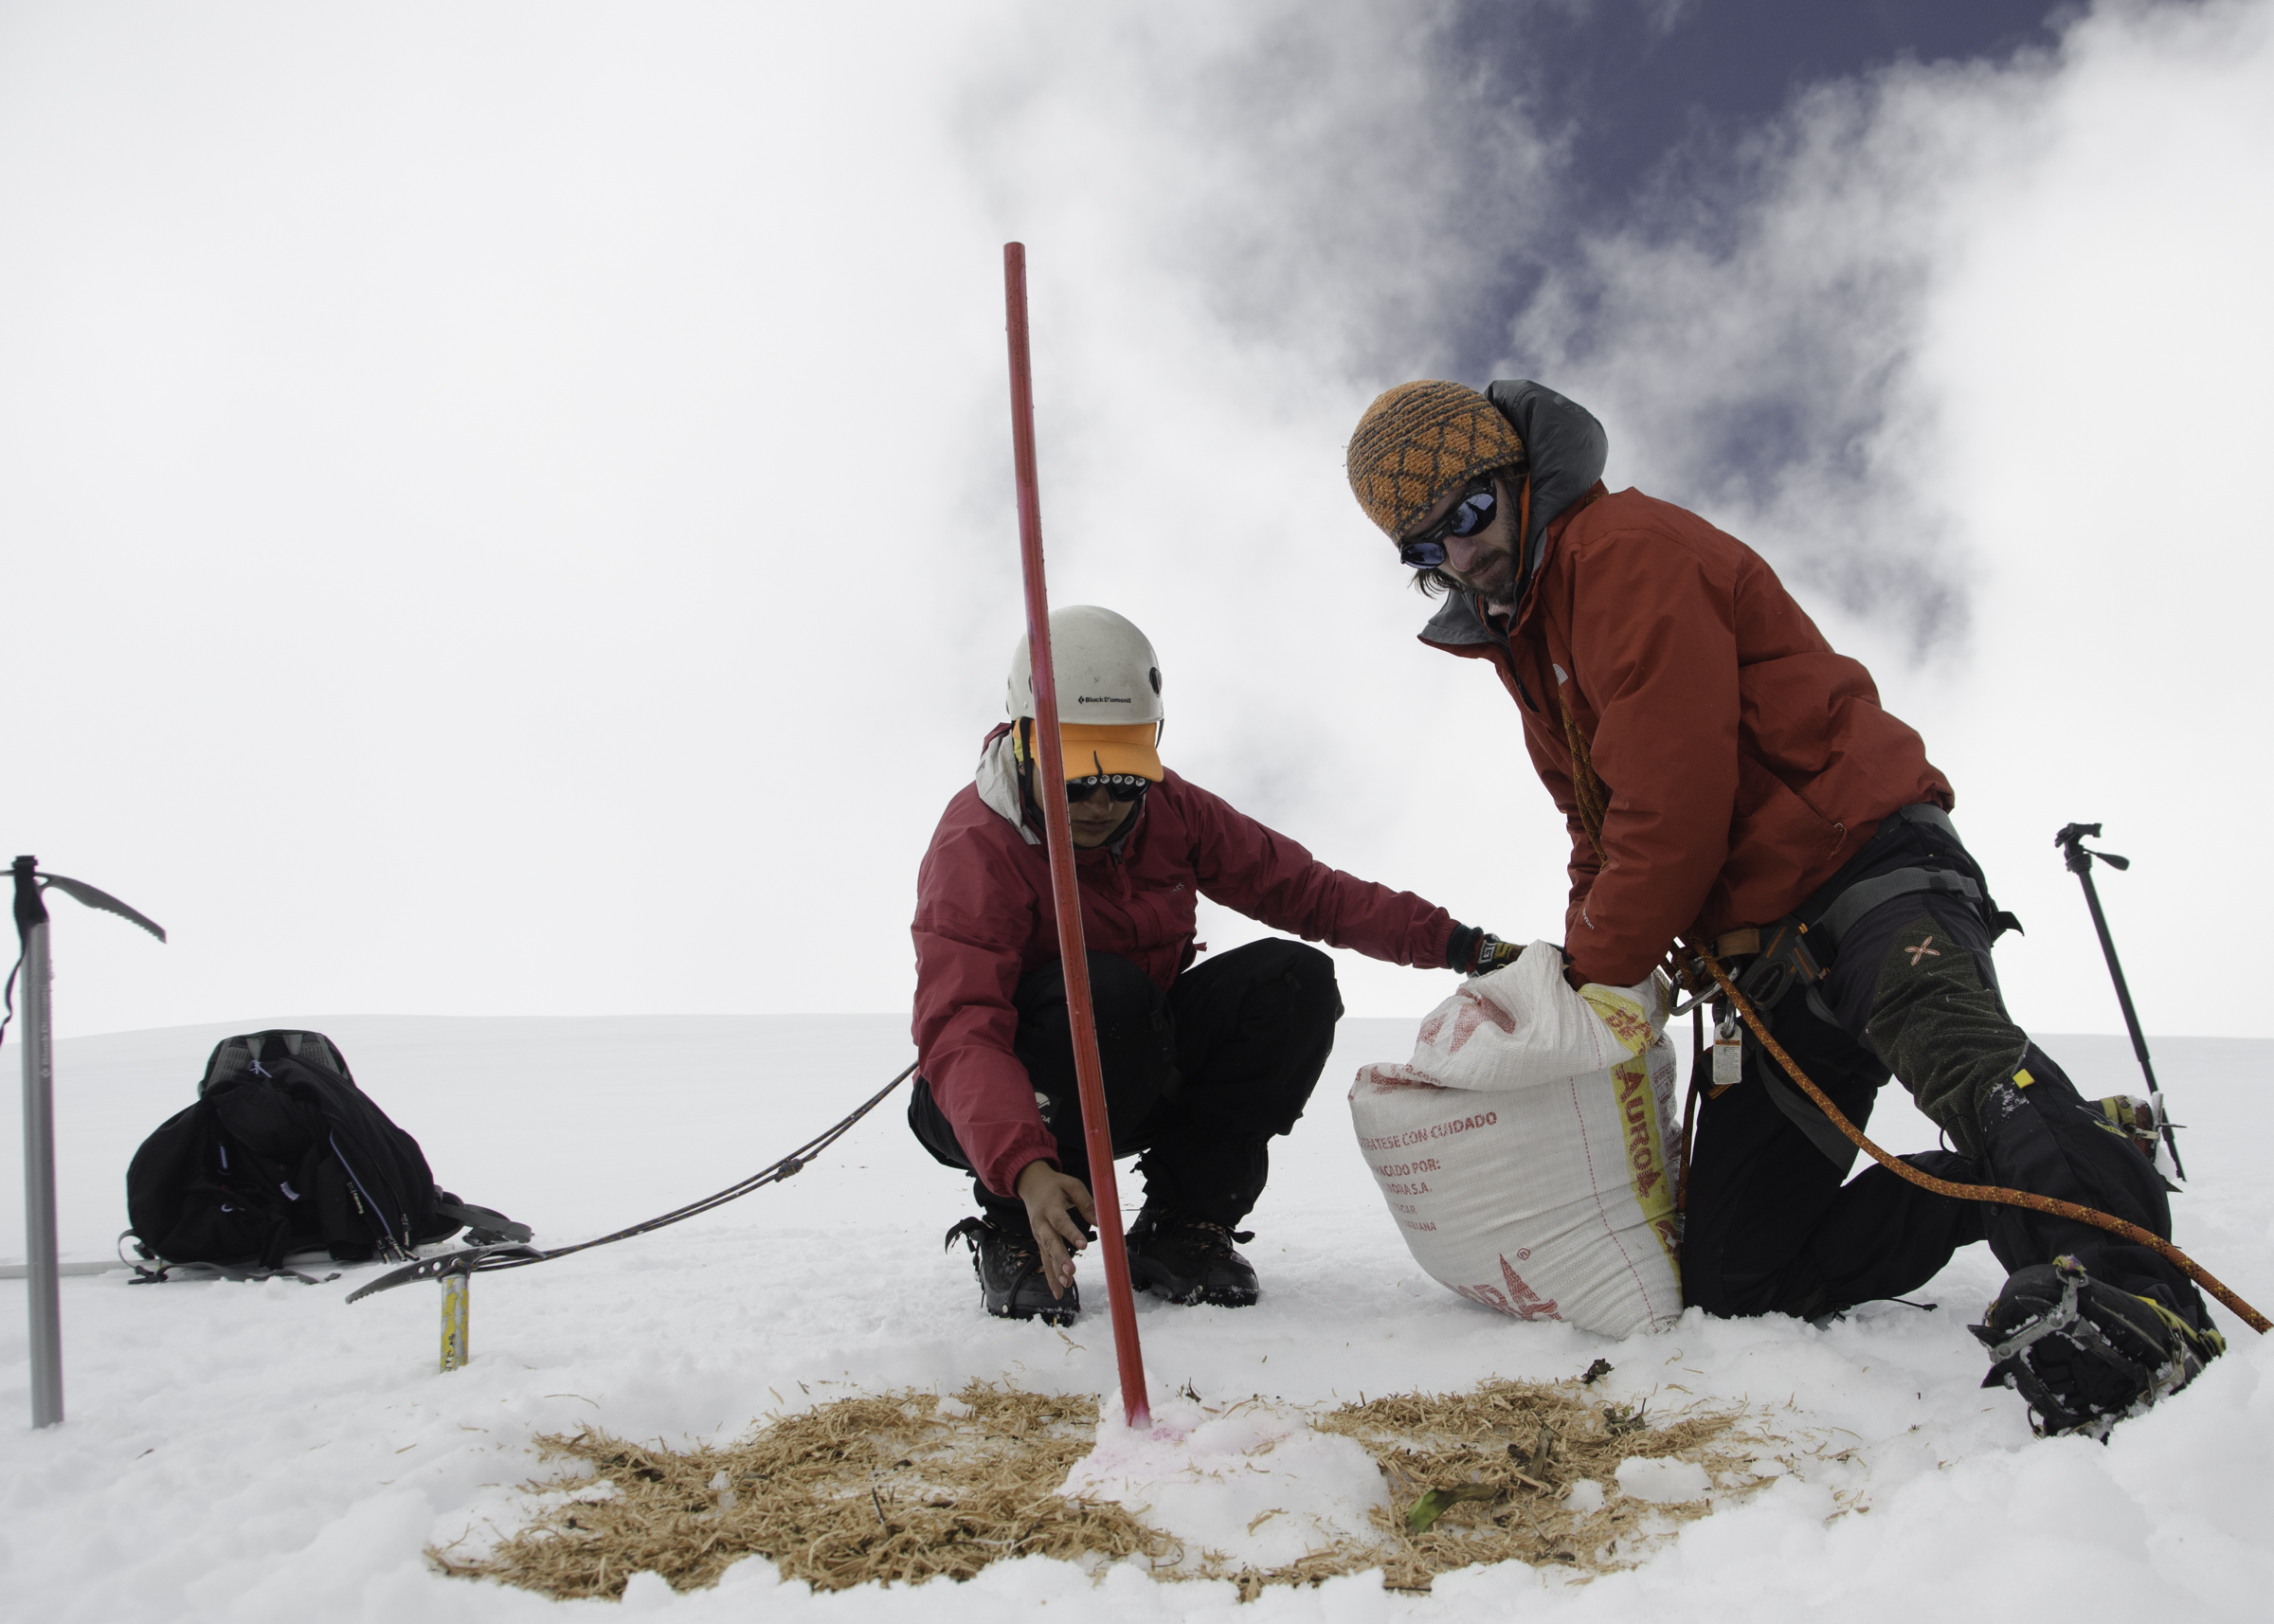 Accumulation stake measurements in the Cocuy mountains, Colombia (P. Rastner)